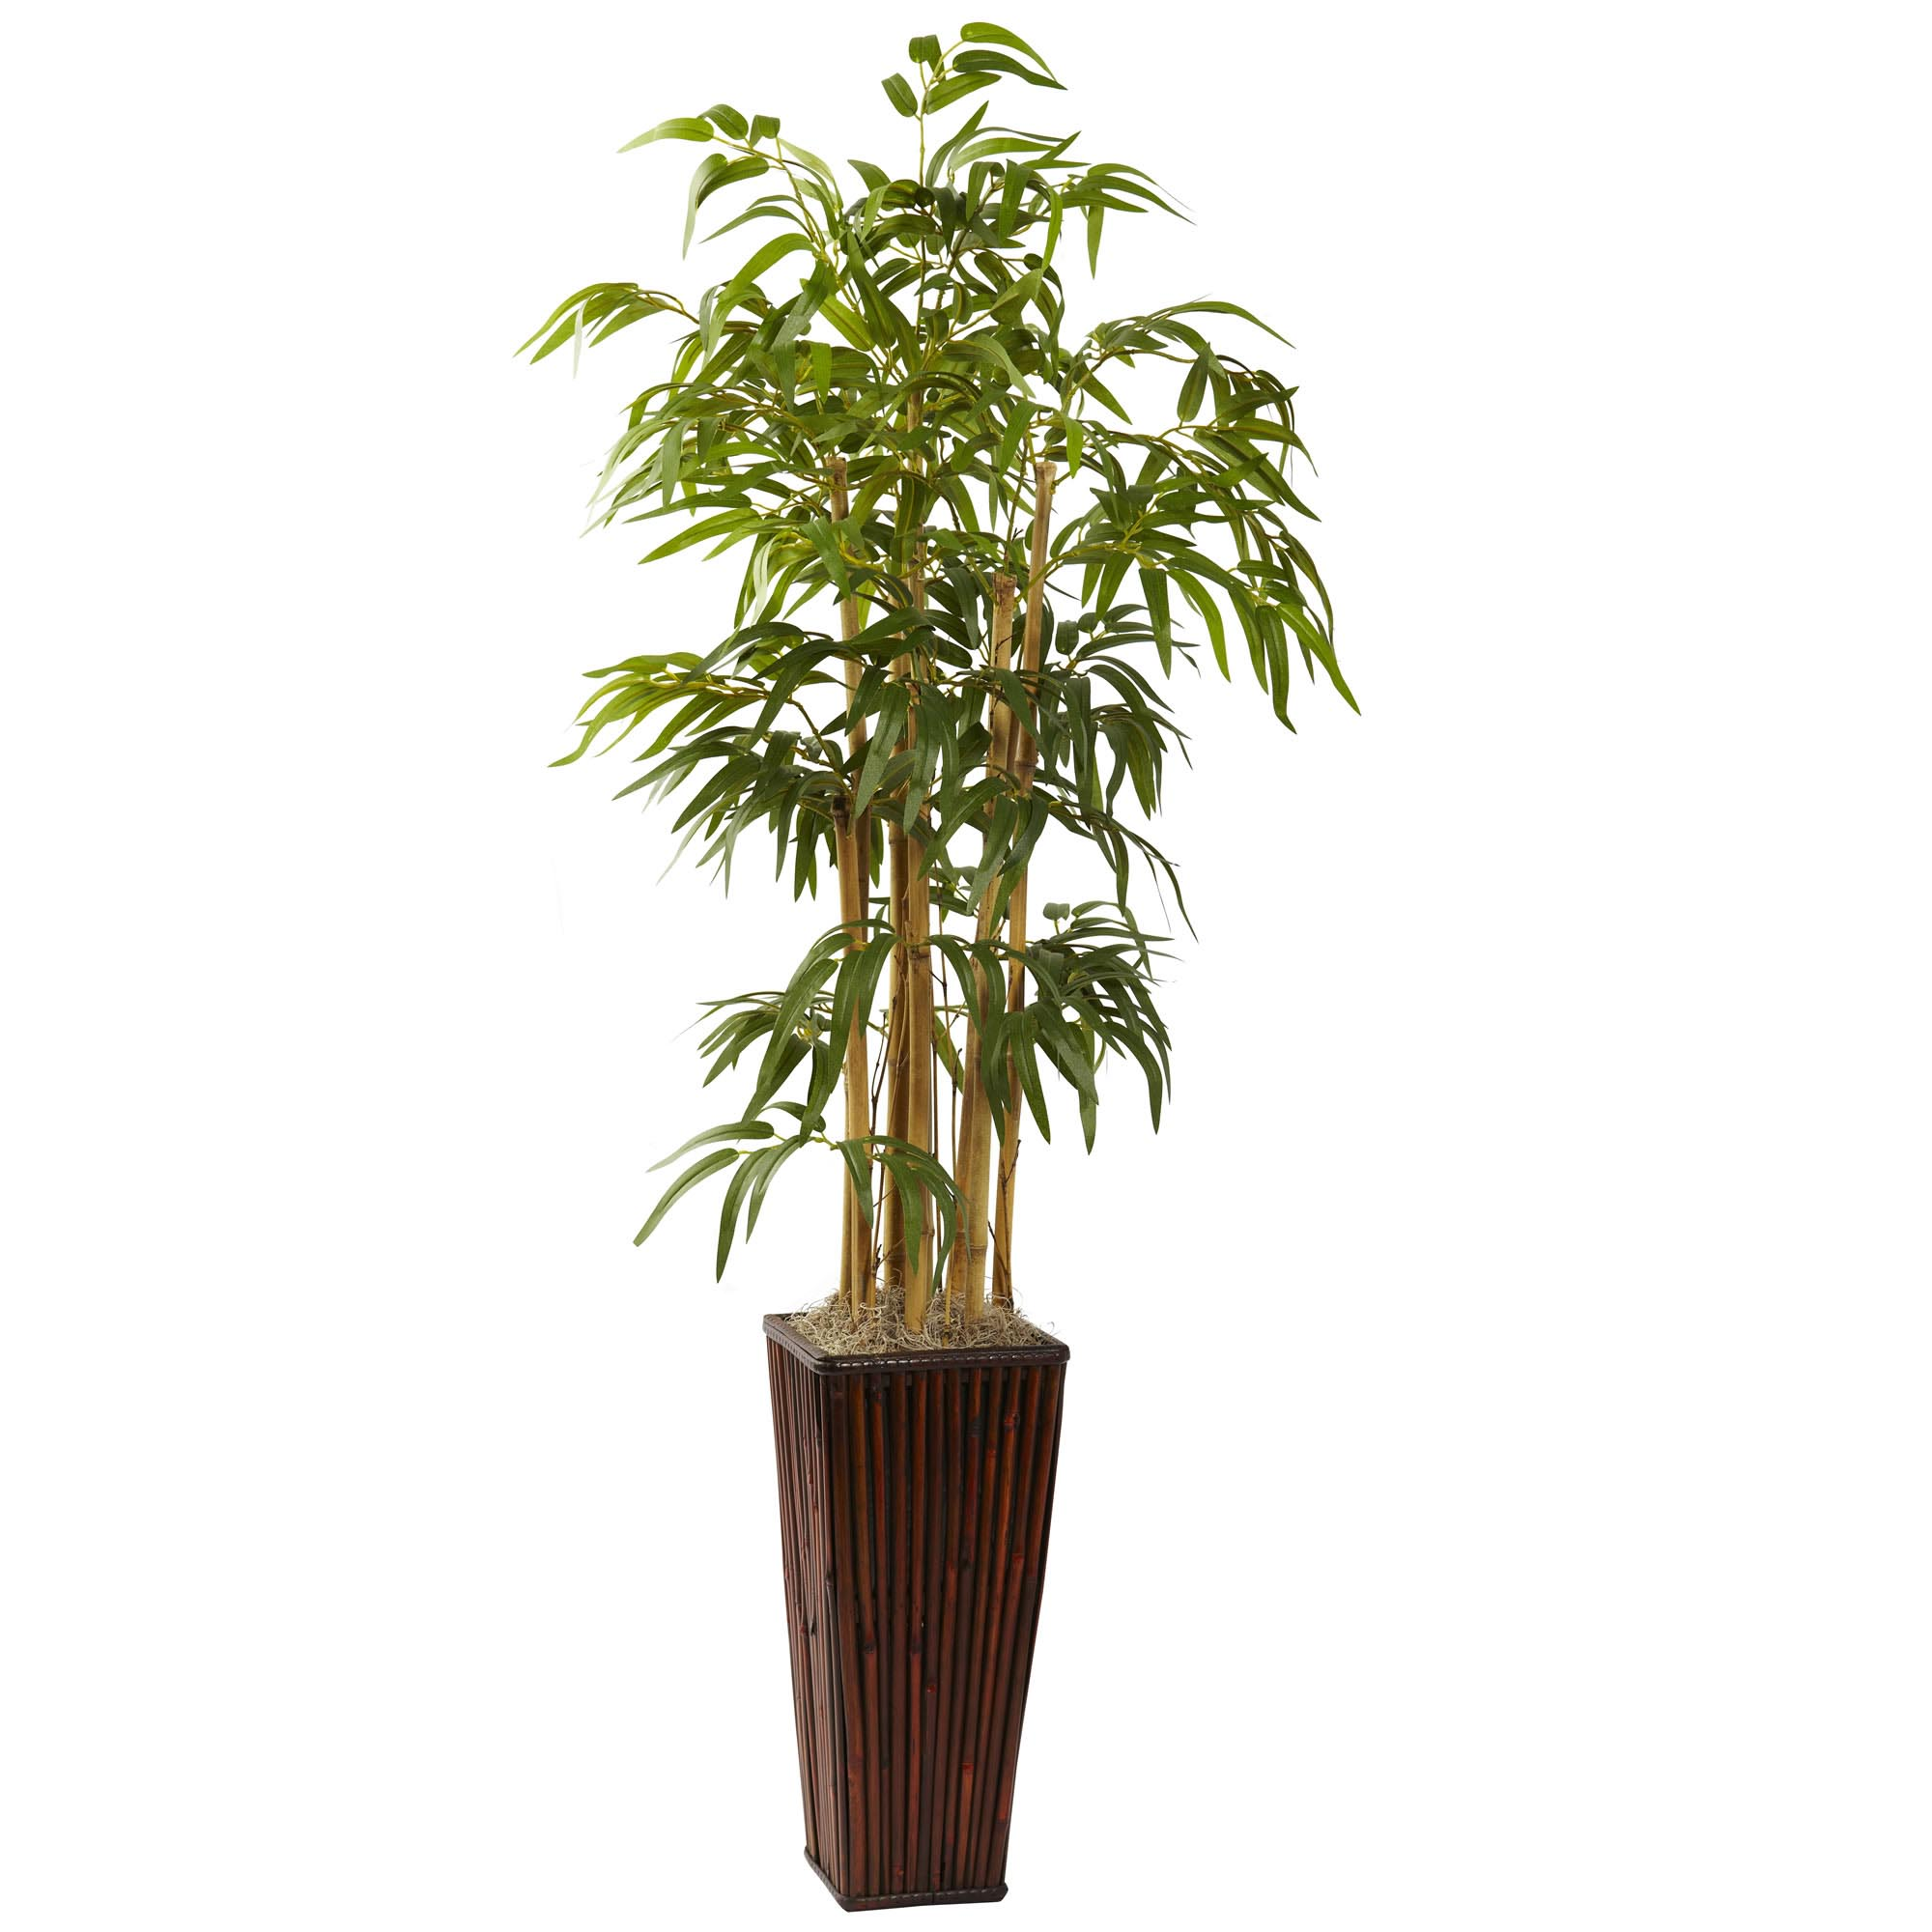 4 foot artificial bamboo in decorative planter 6737 for Faux bambou plante